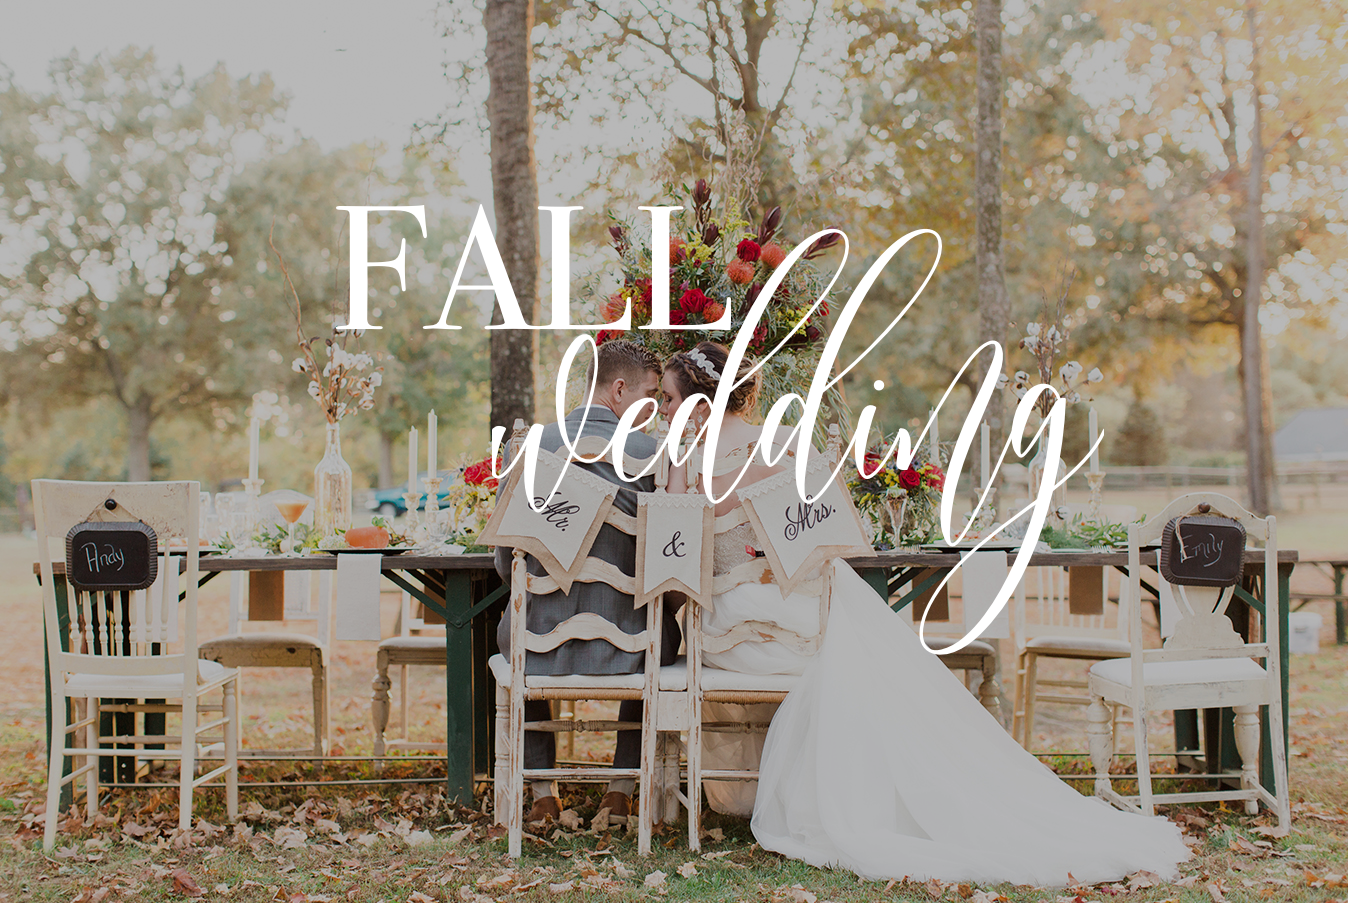 FALL WEDDING for OBJ